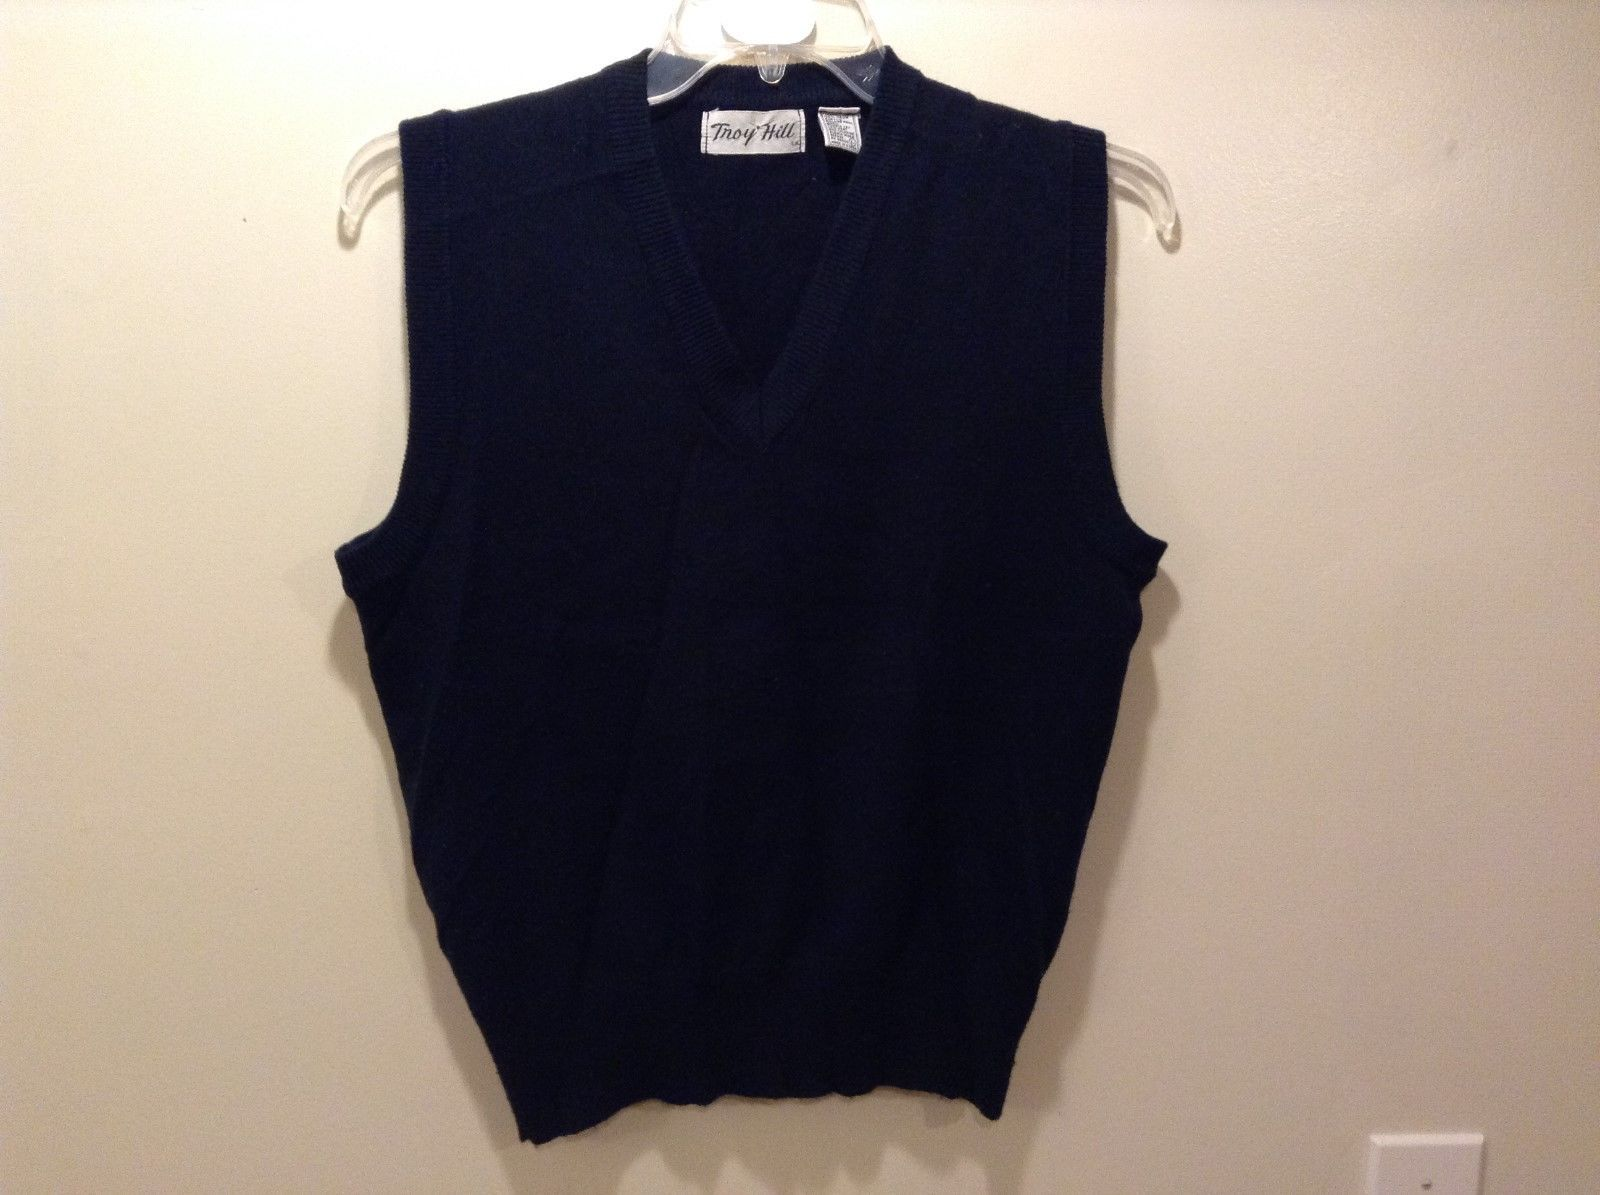 Troy Hill Men's Navy Blue V-Neck Sweater Vest Sz LG